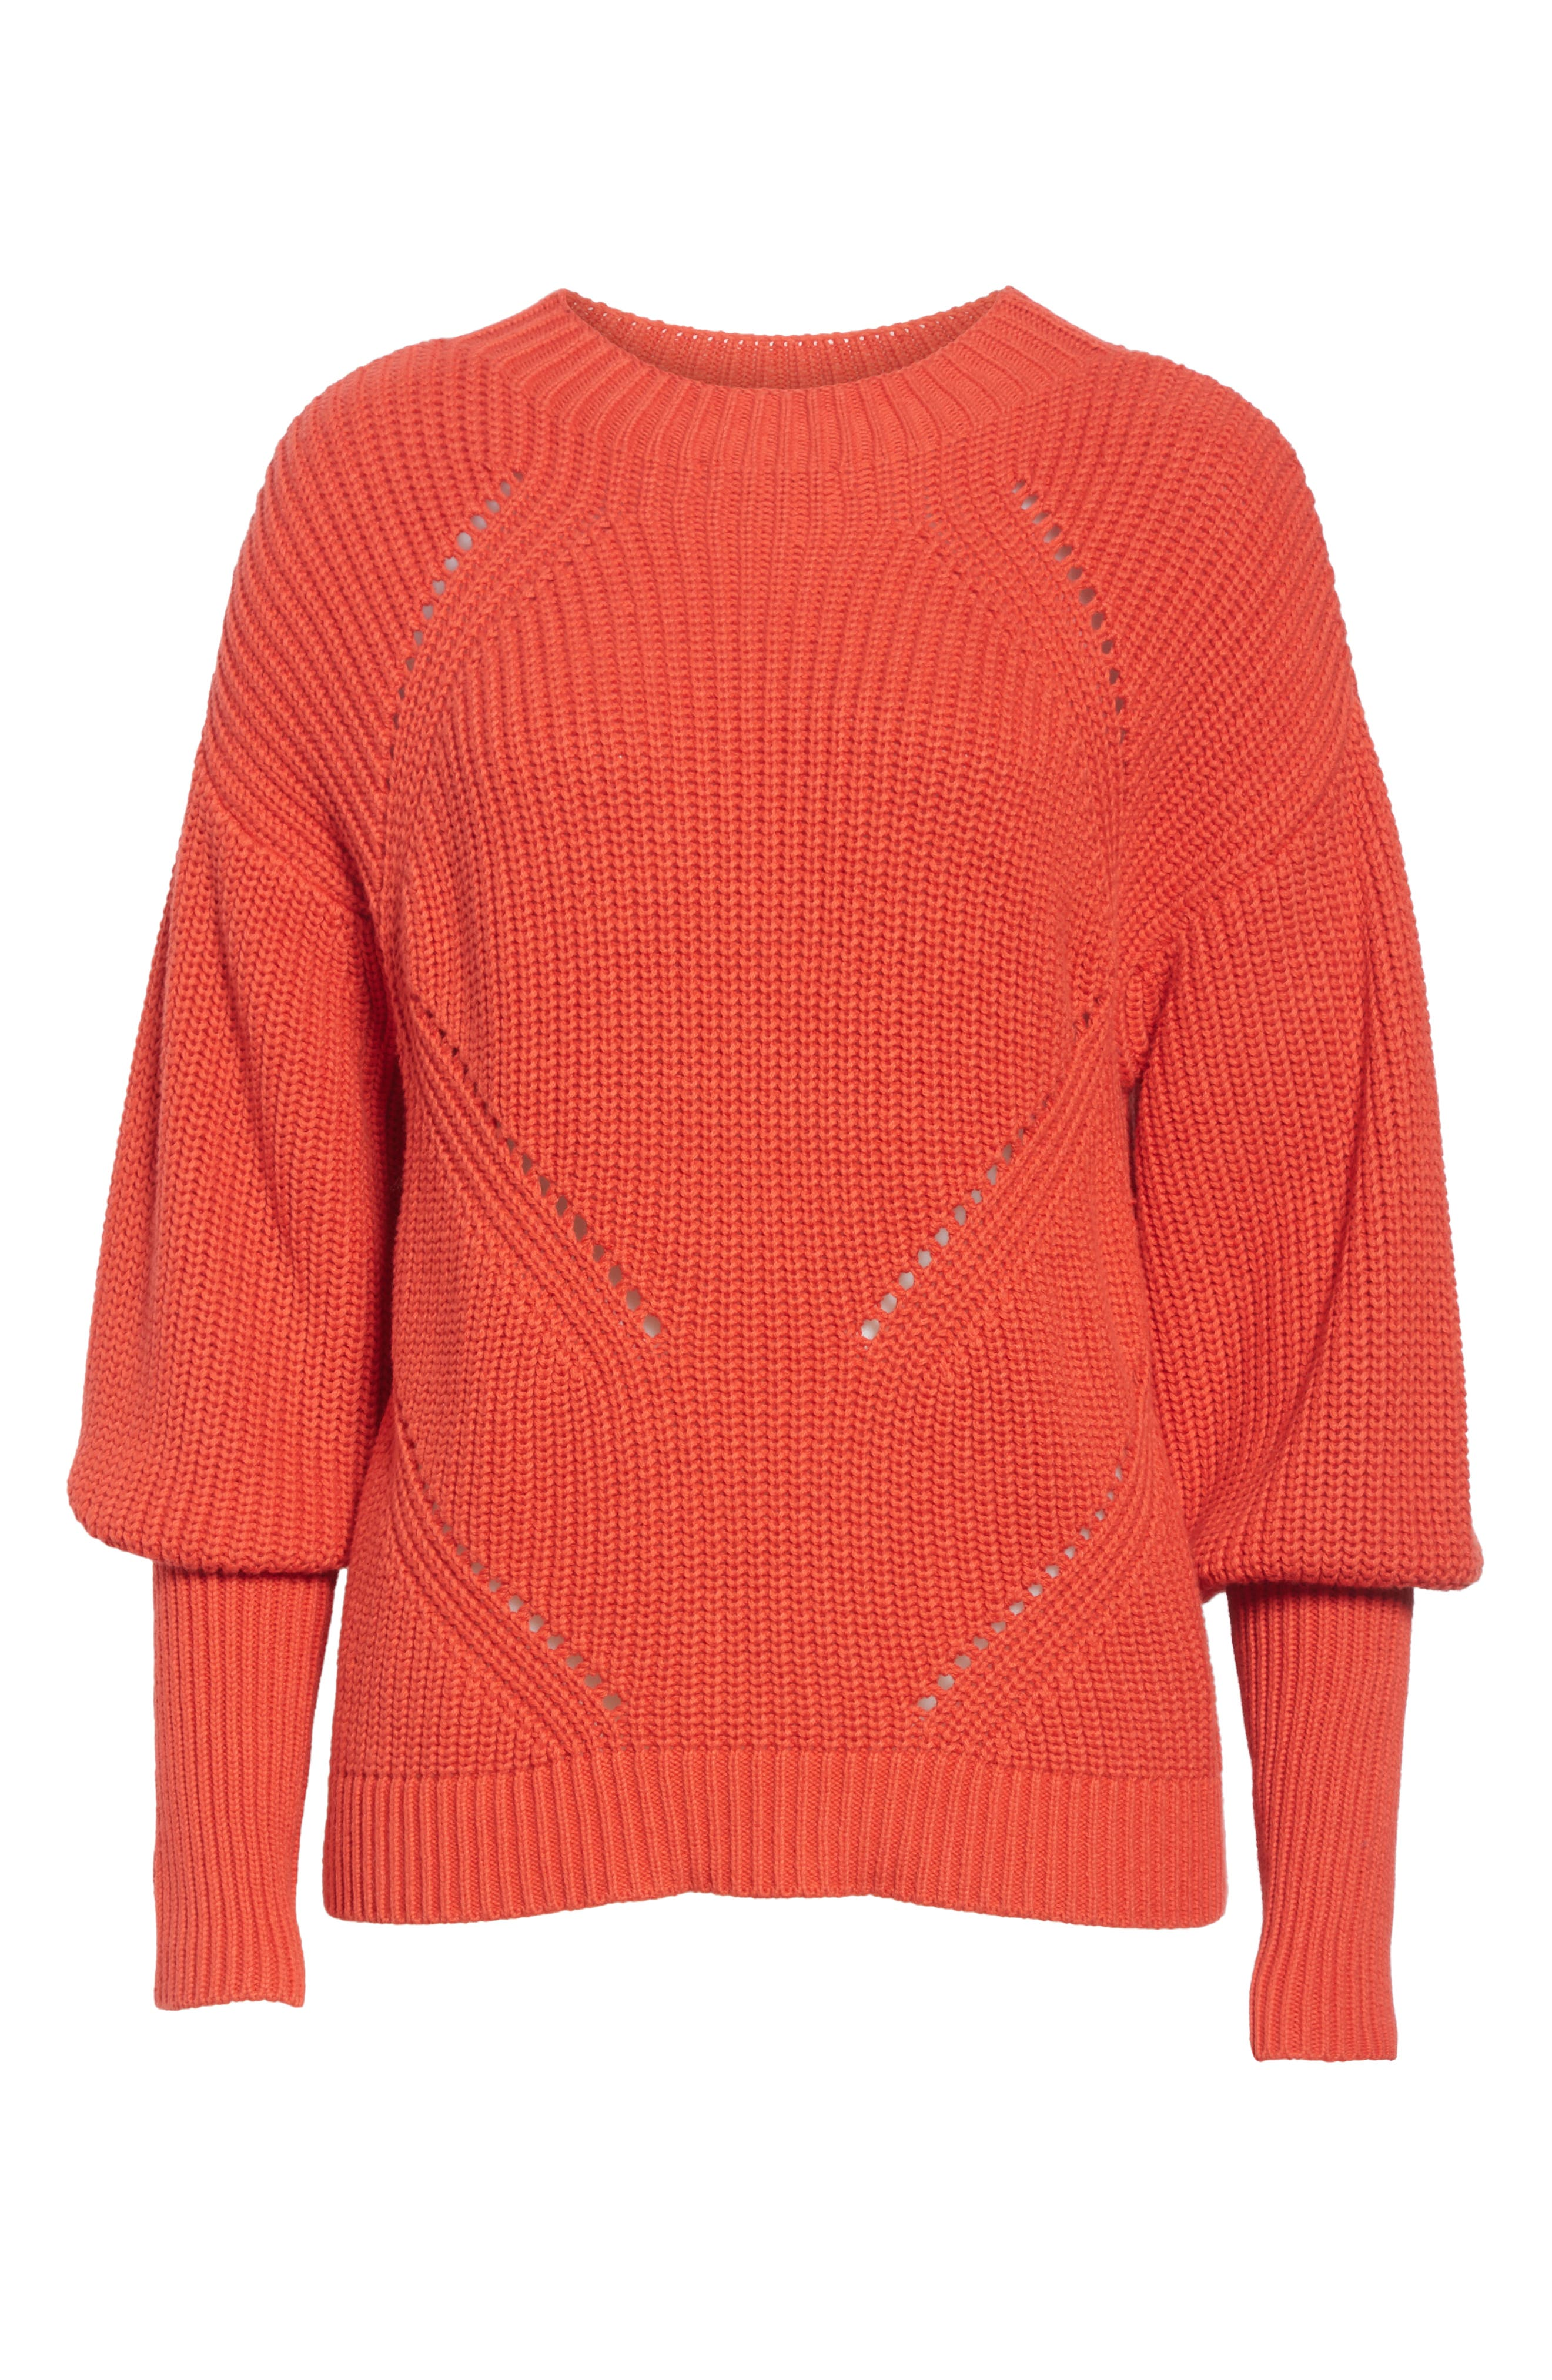 Landyn Blouson Sleeve Sweater,                             Alternate thumbnail 6, color,                             600